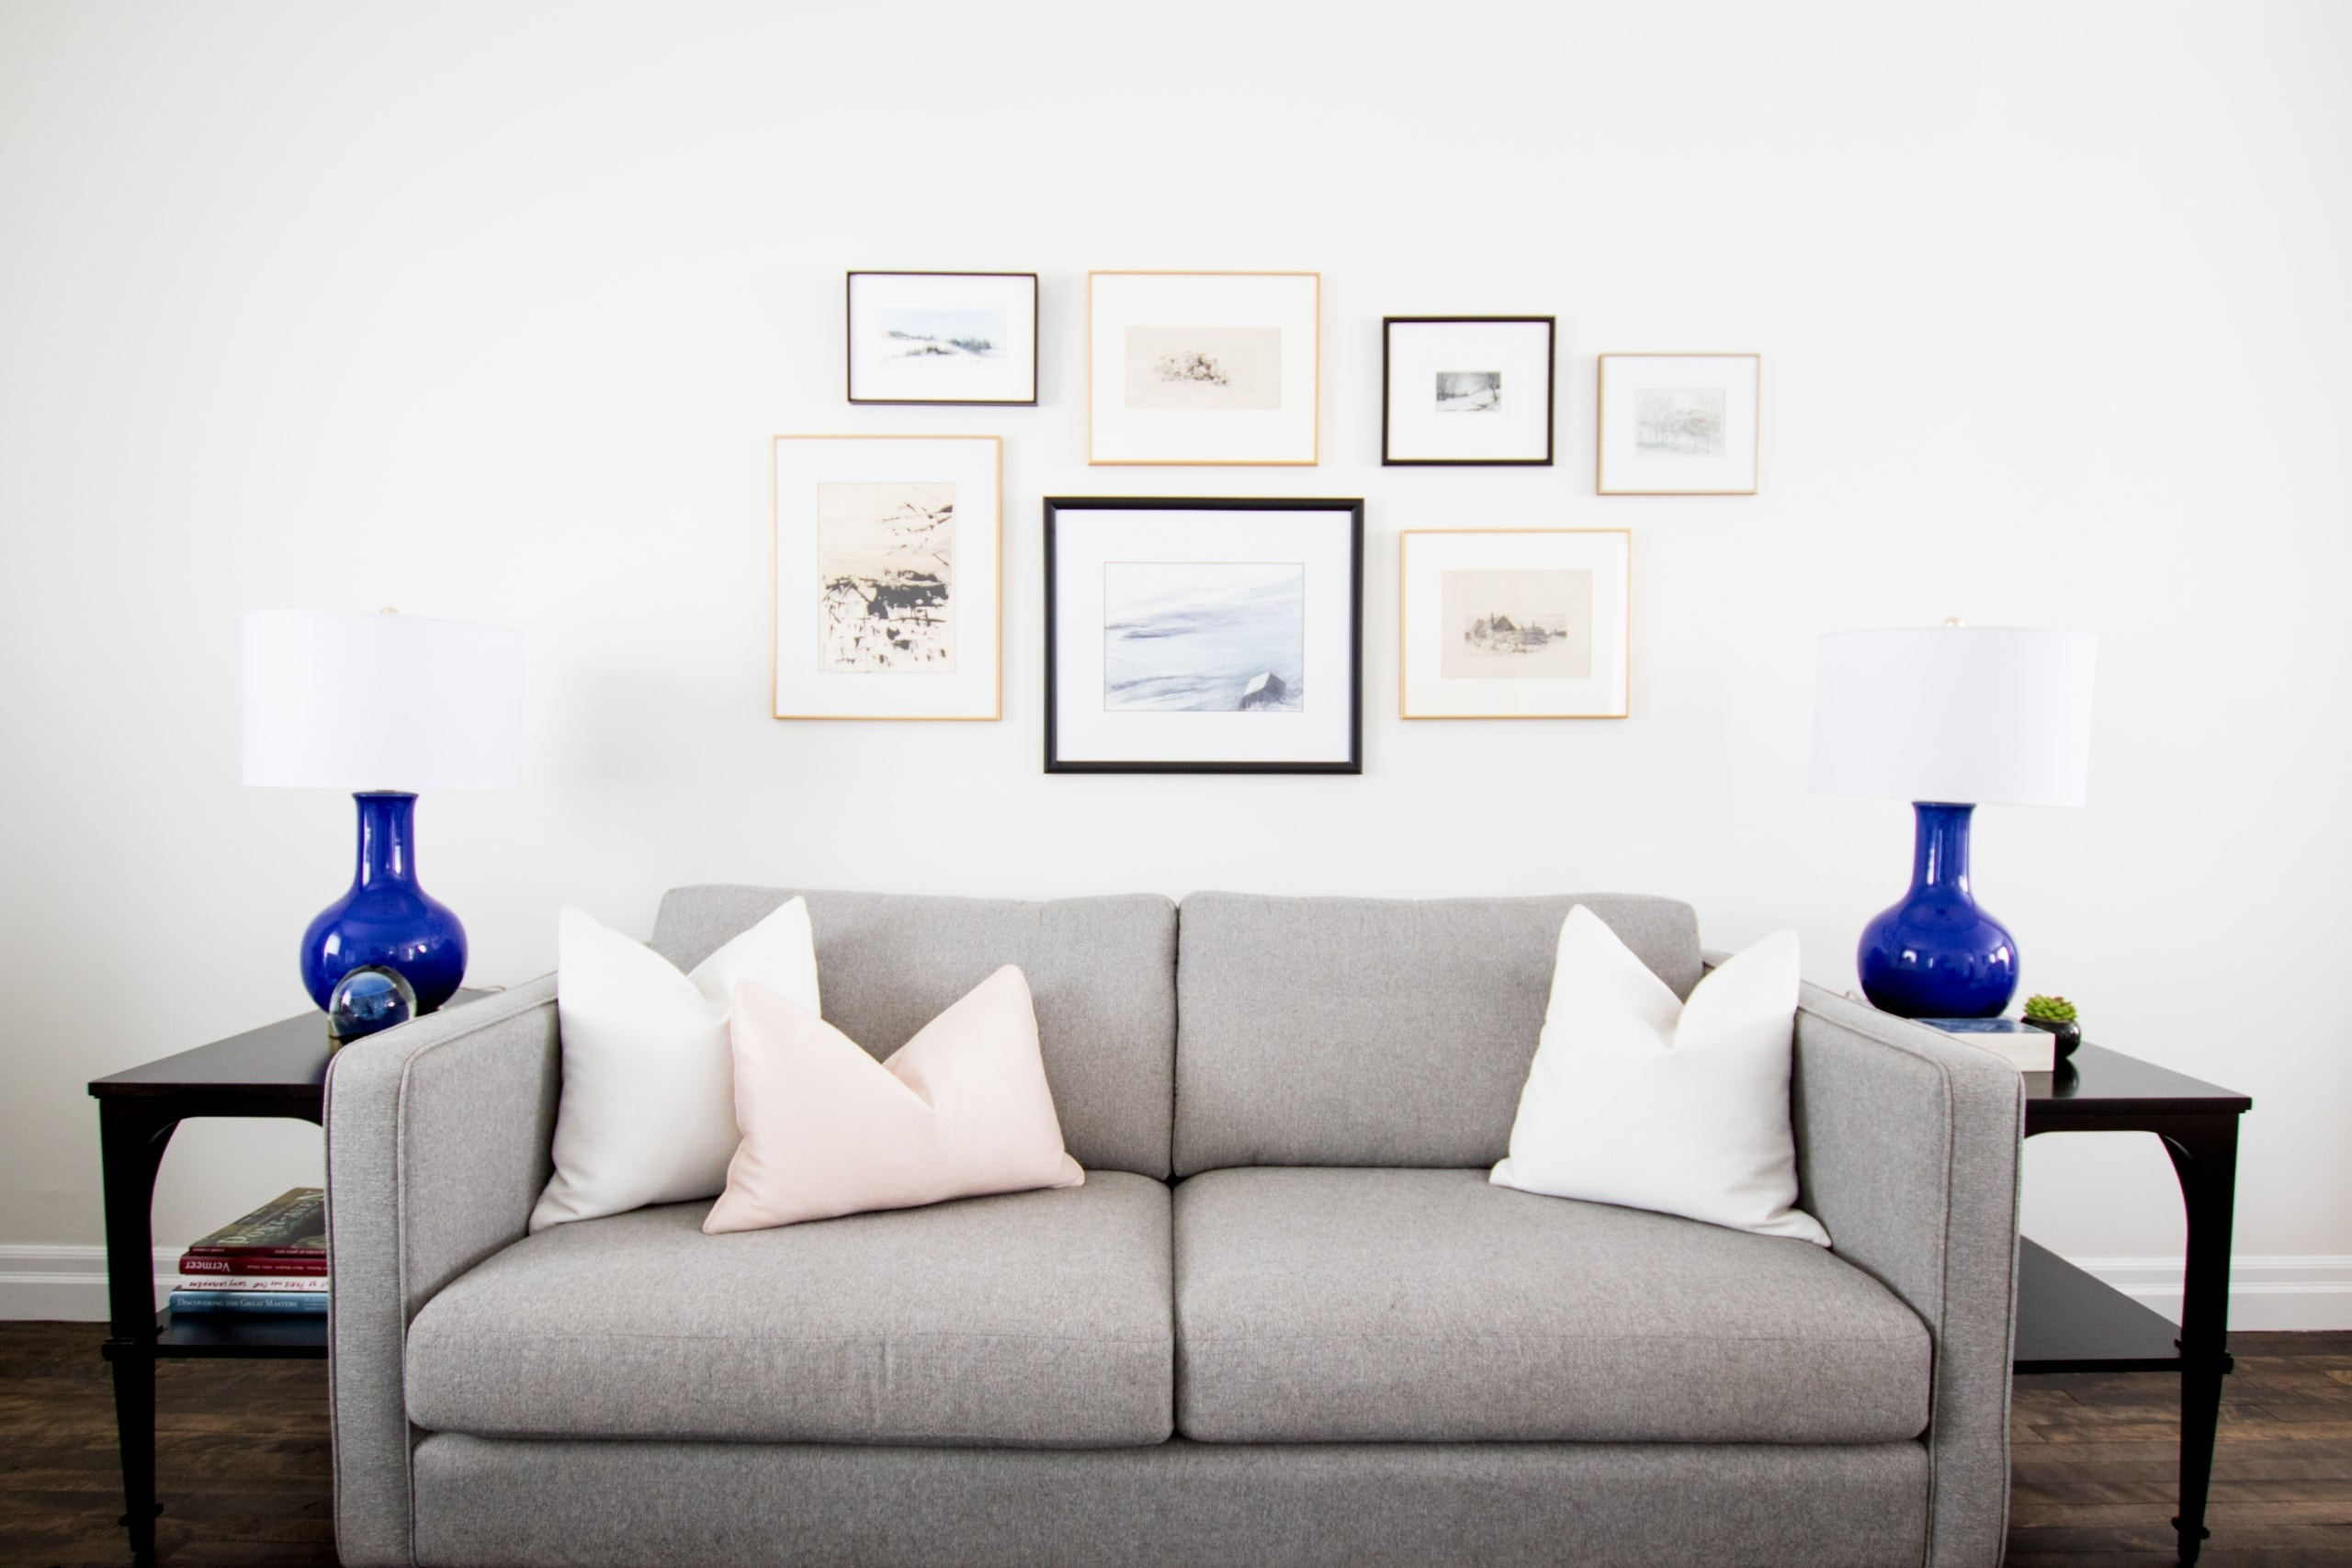 Gray couch with pictures above it inside living room